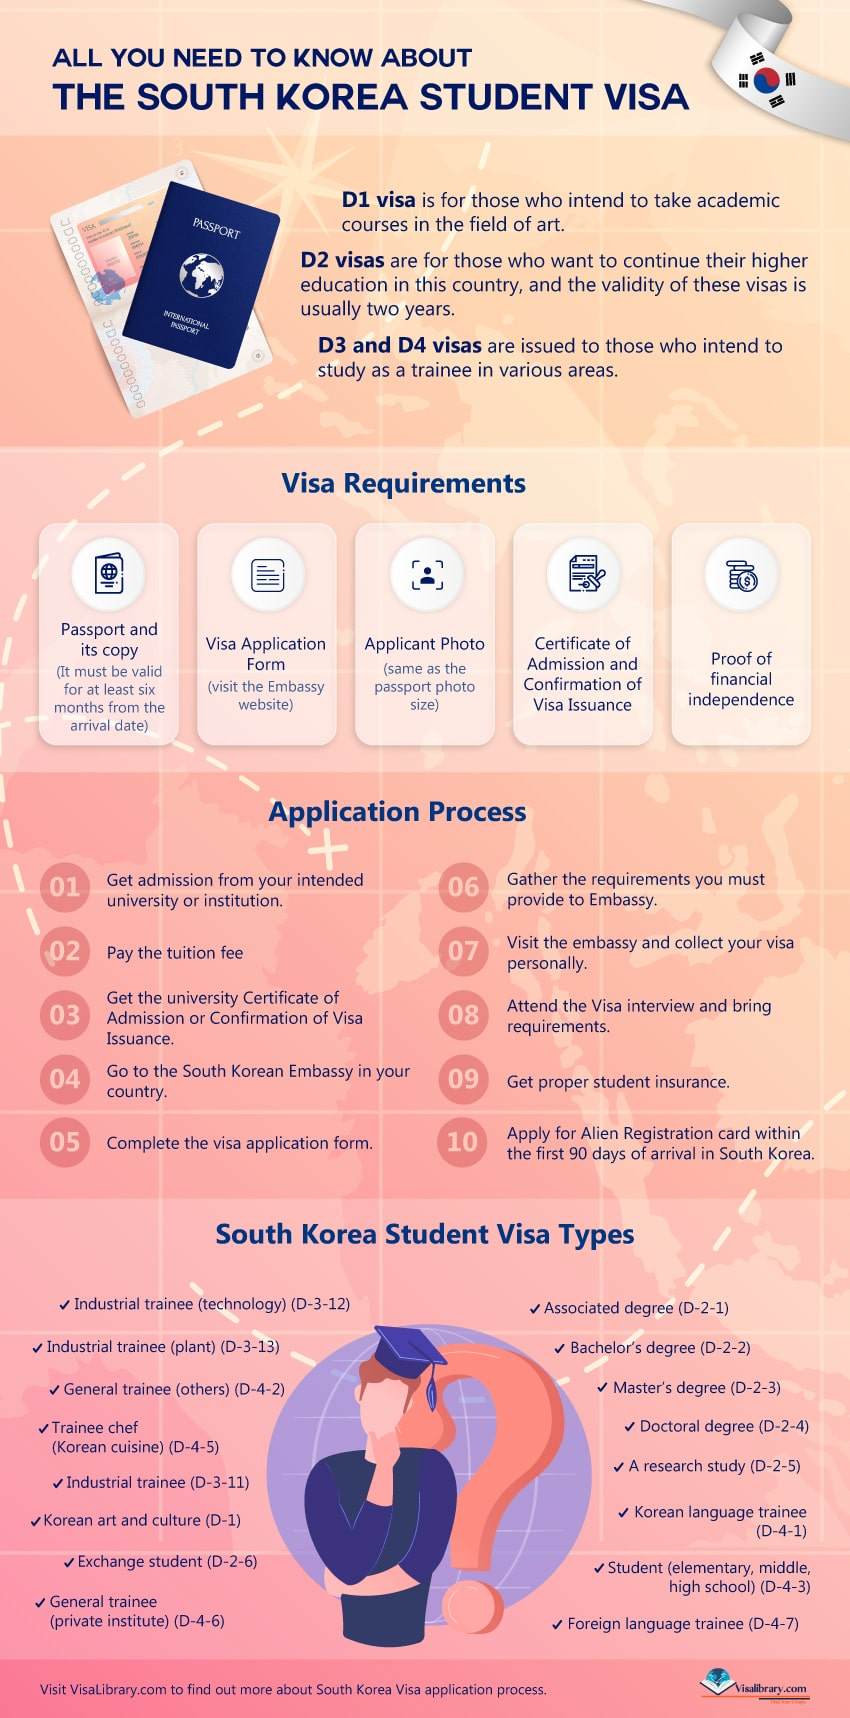 All you need to know about the South Korea Student Visa